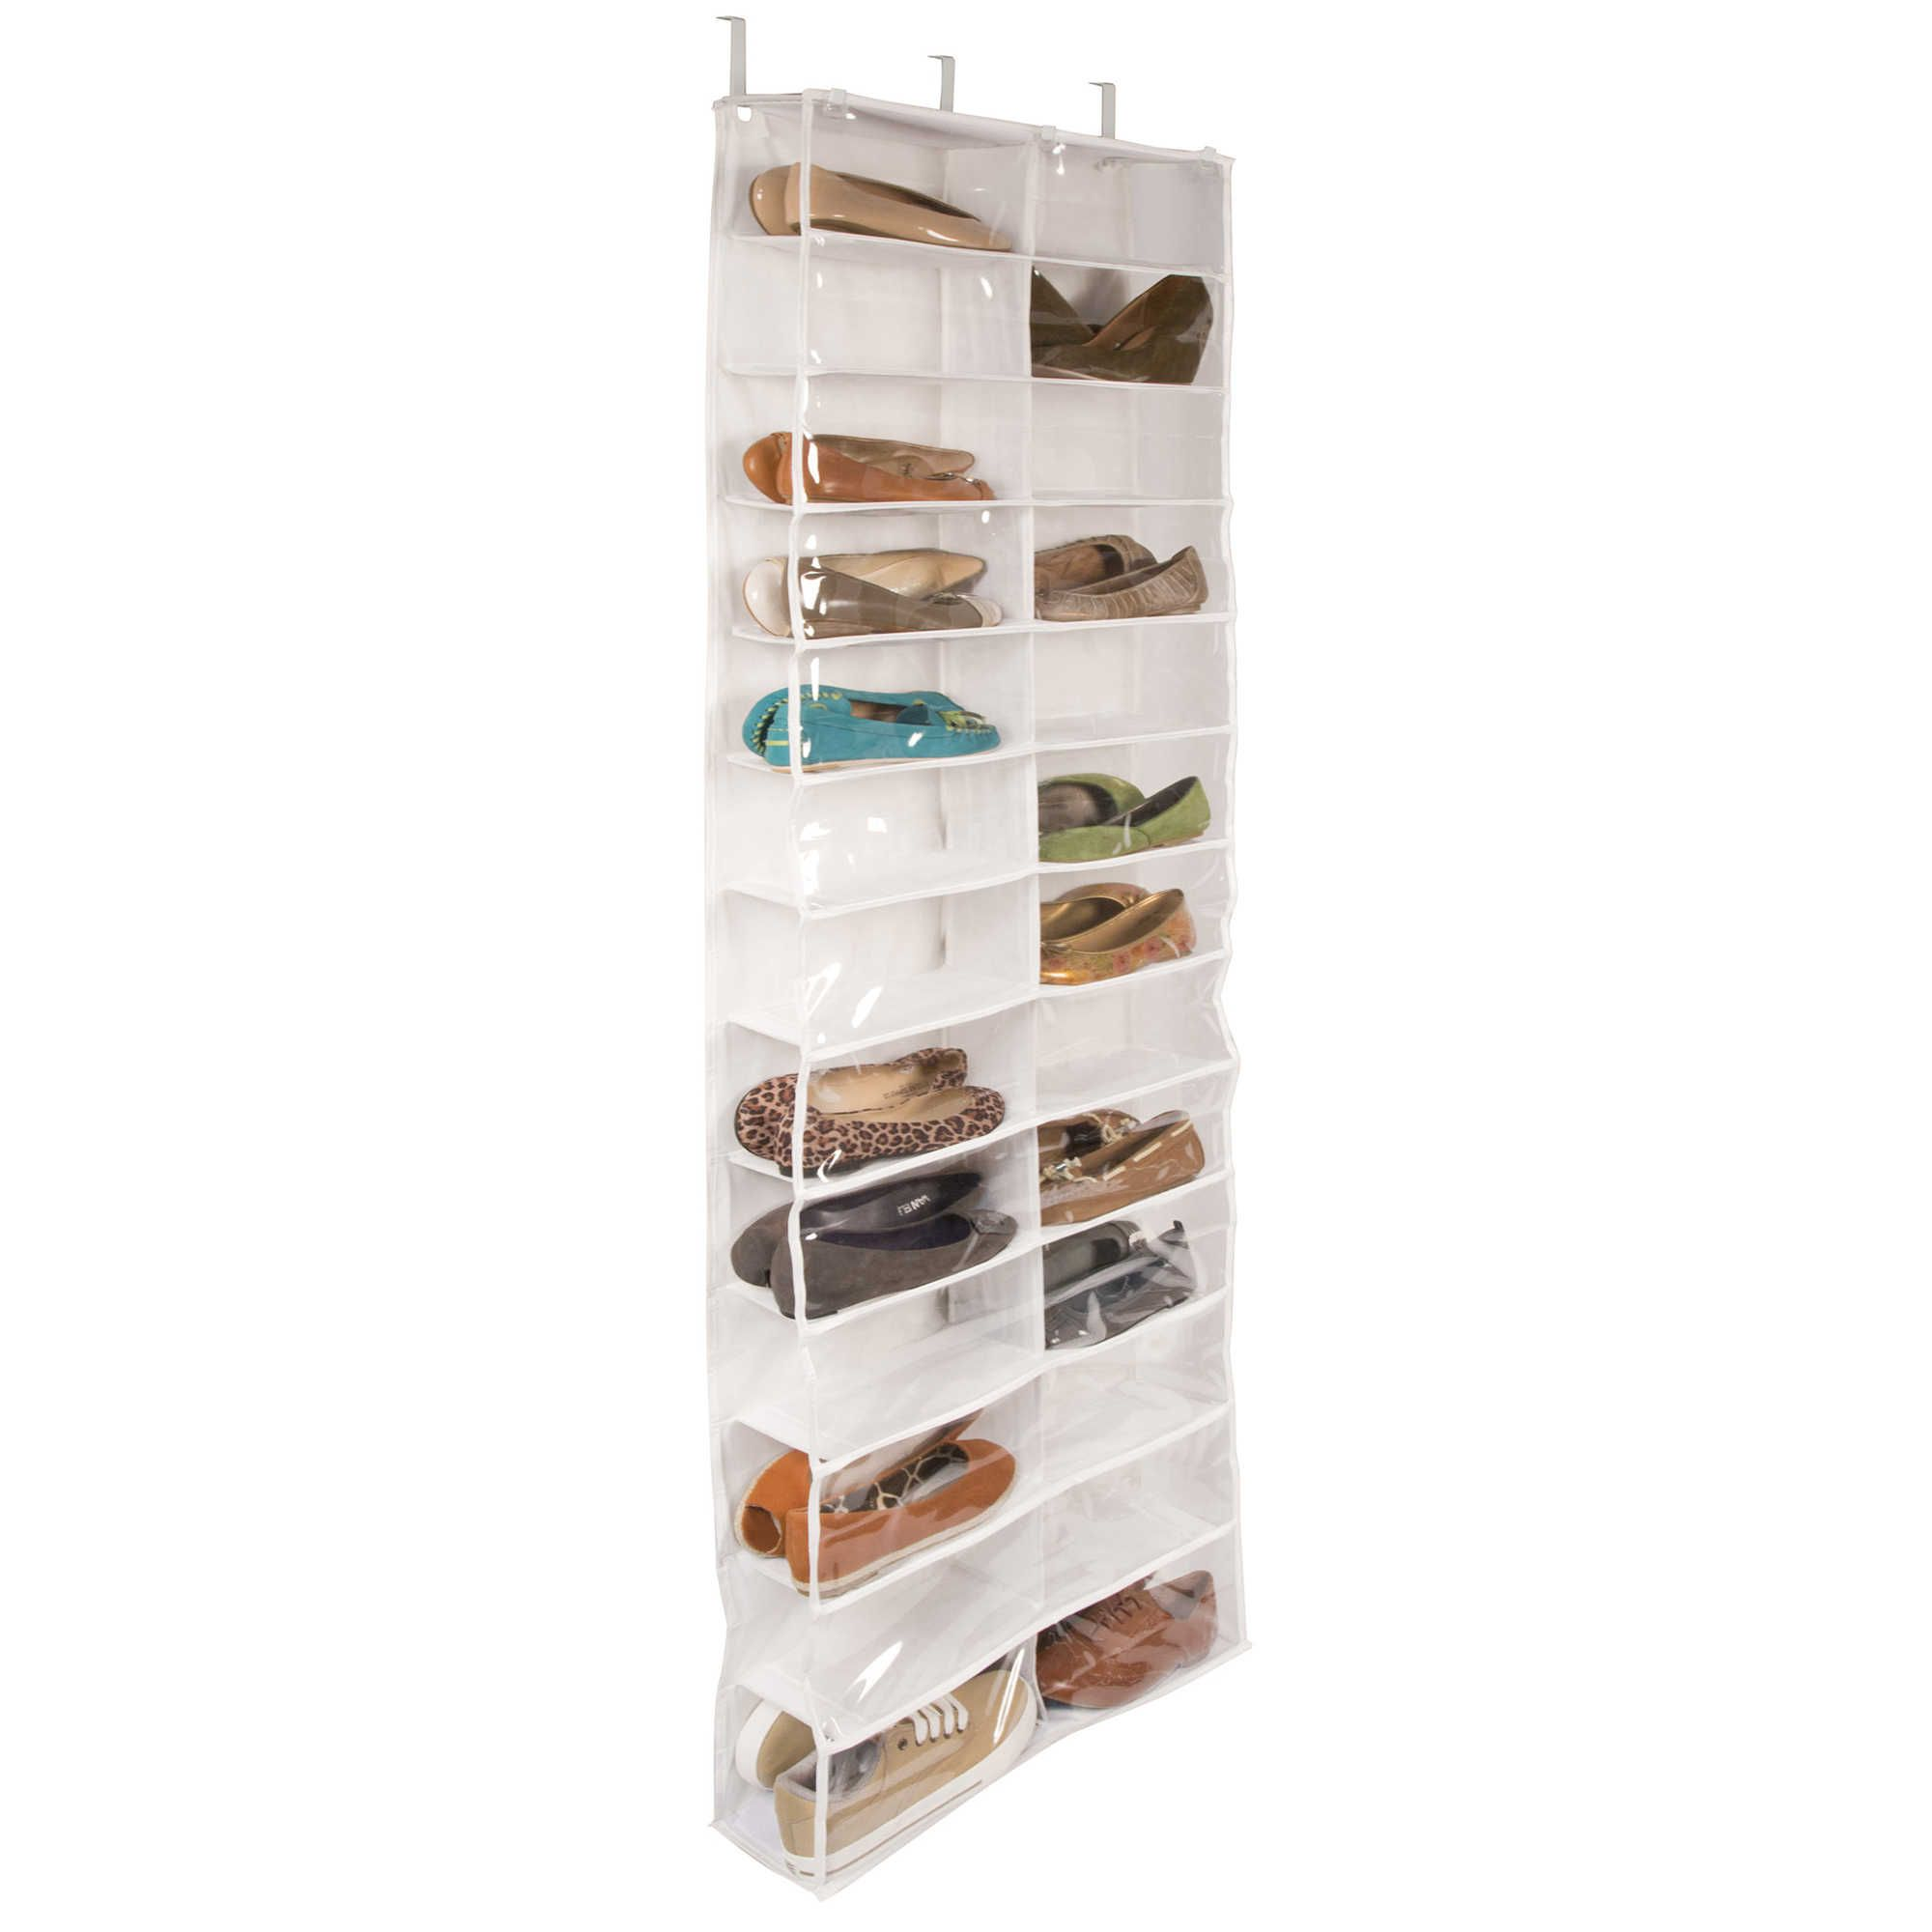 Closetware Clear Over The Door 26 Pocket Shoe Organizer Hanging Shoe Storage Door Shoe Organizer Shoe Organizer